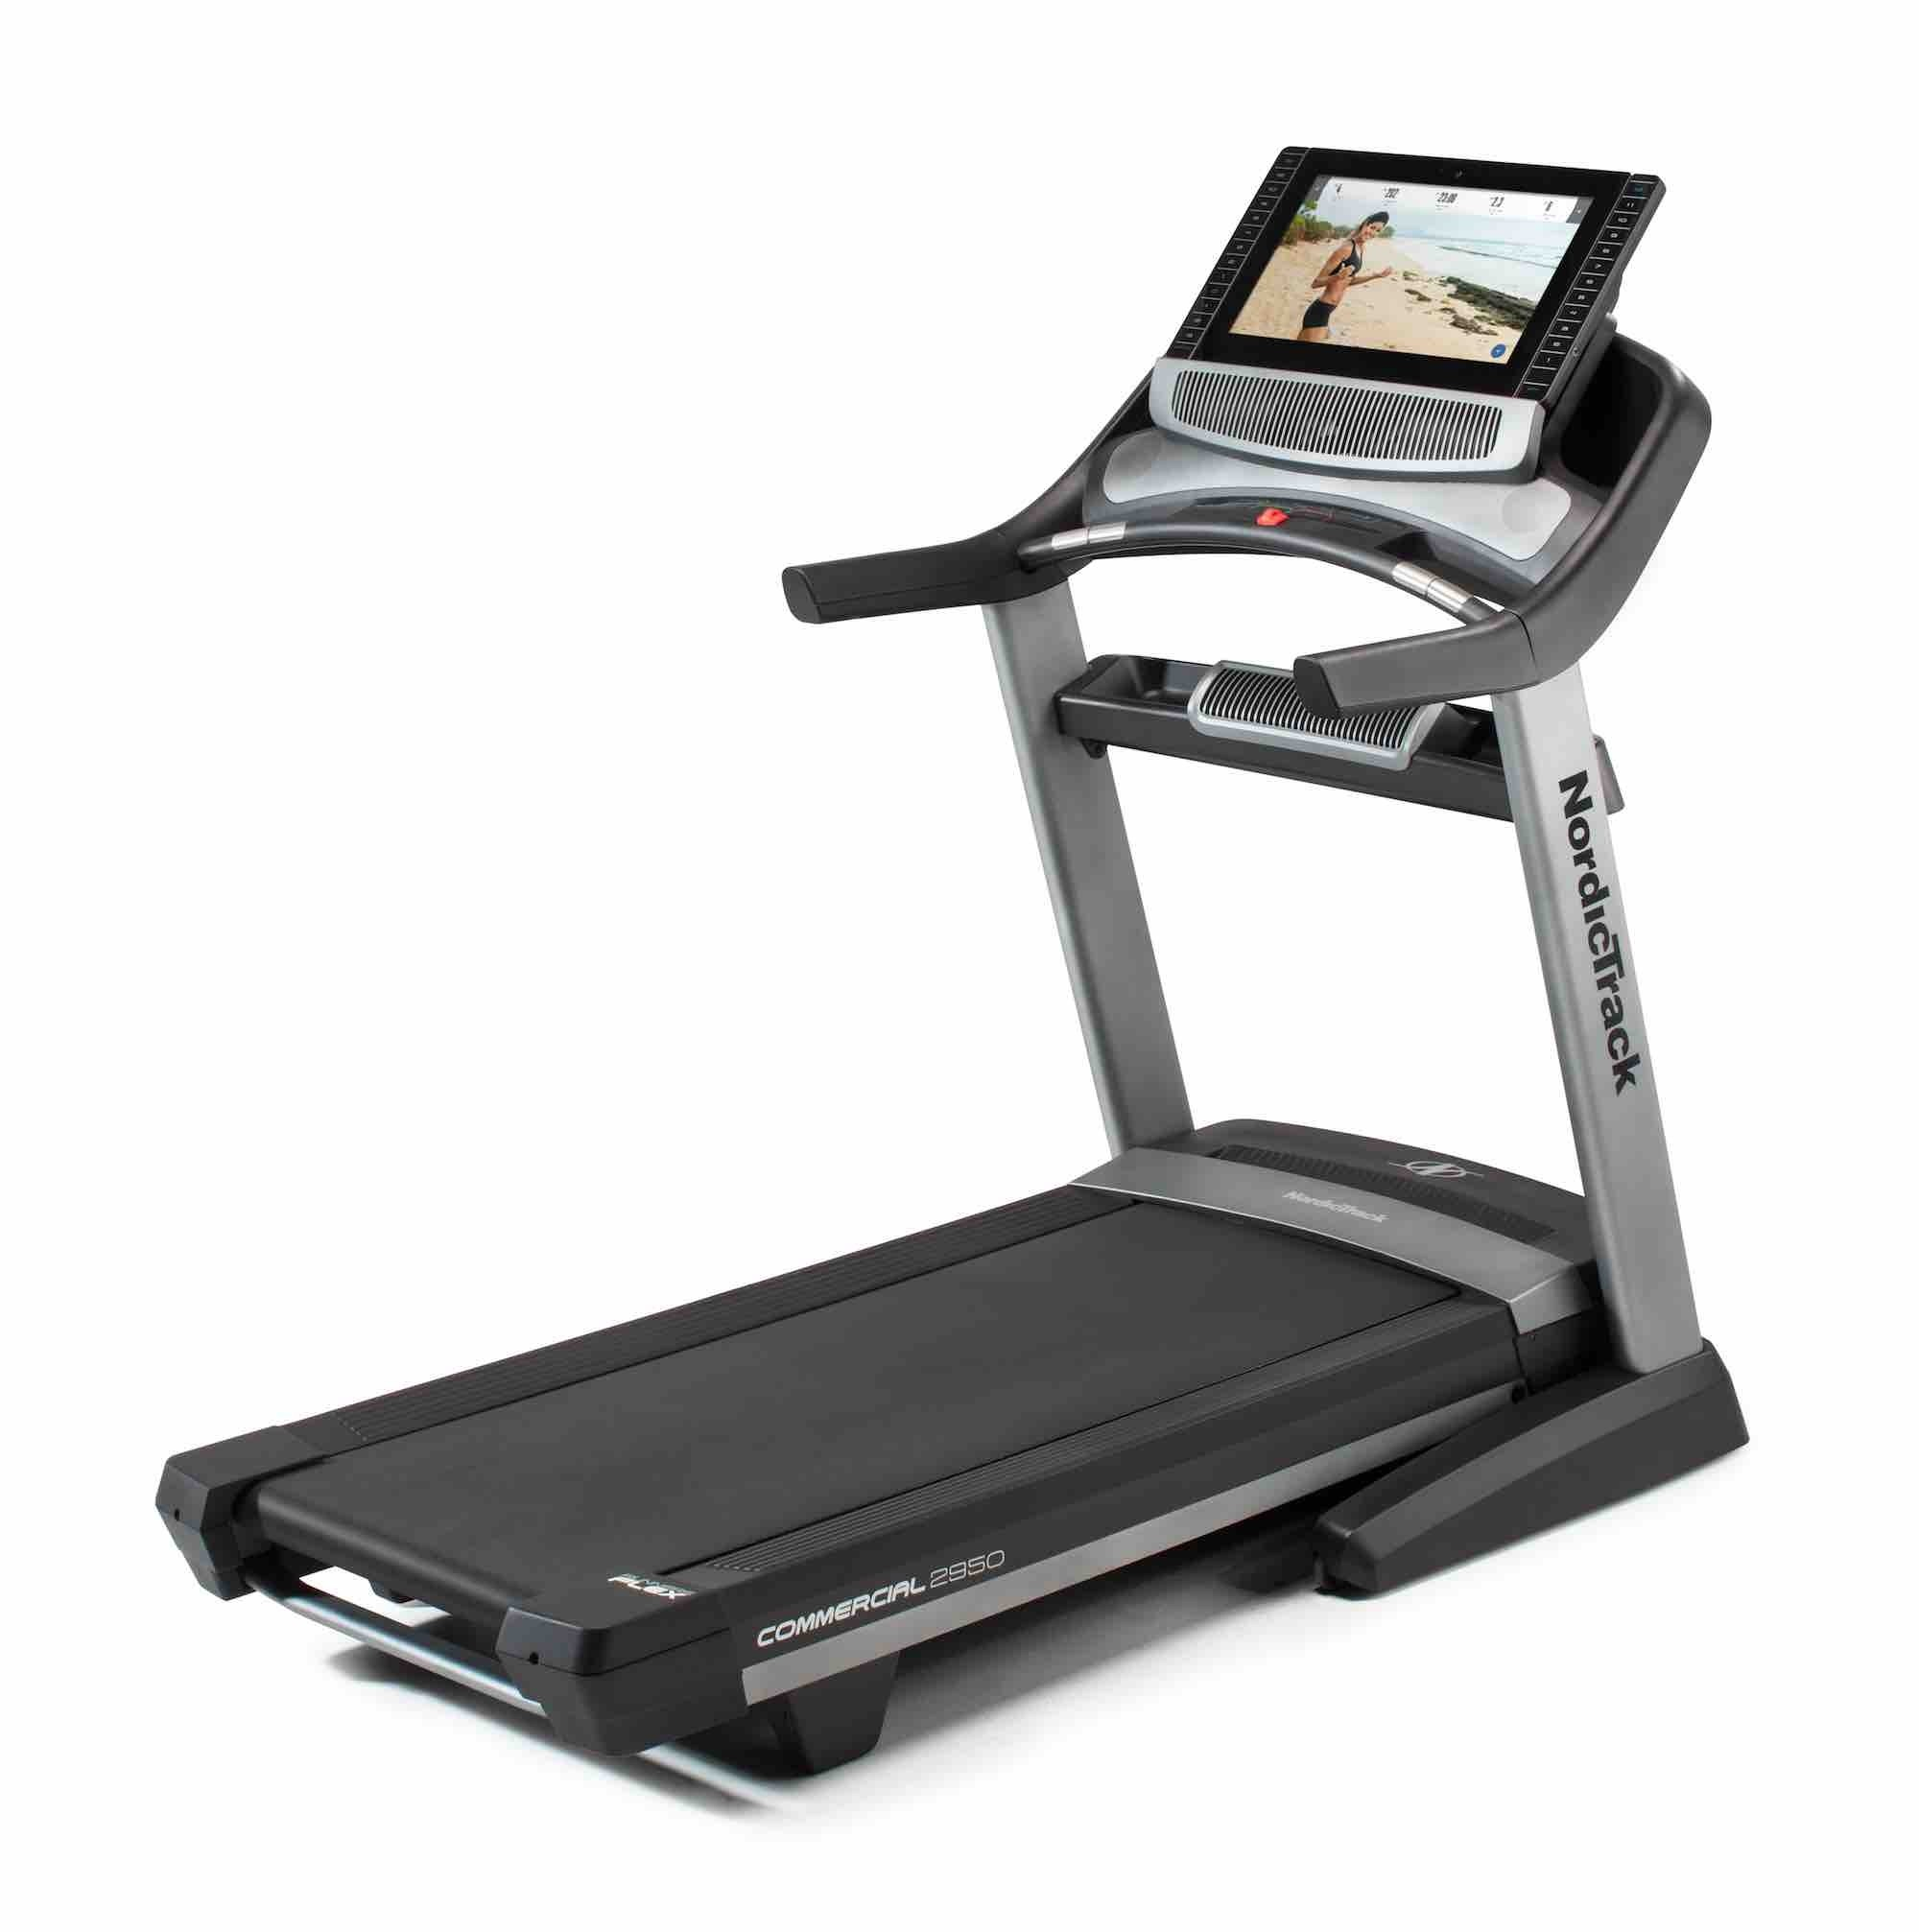 NordicTrack Commercial 2950 Treadmill with 22'' Interactive Touchscreen